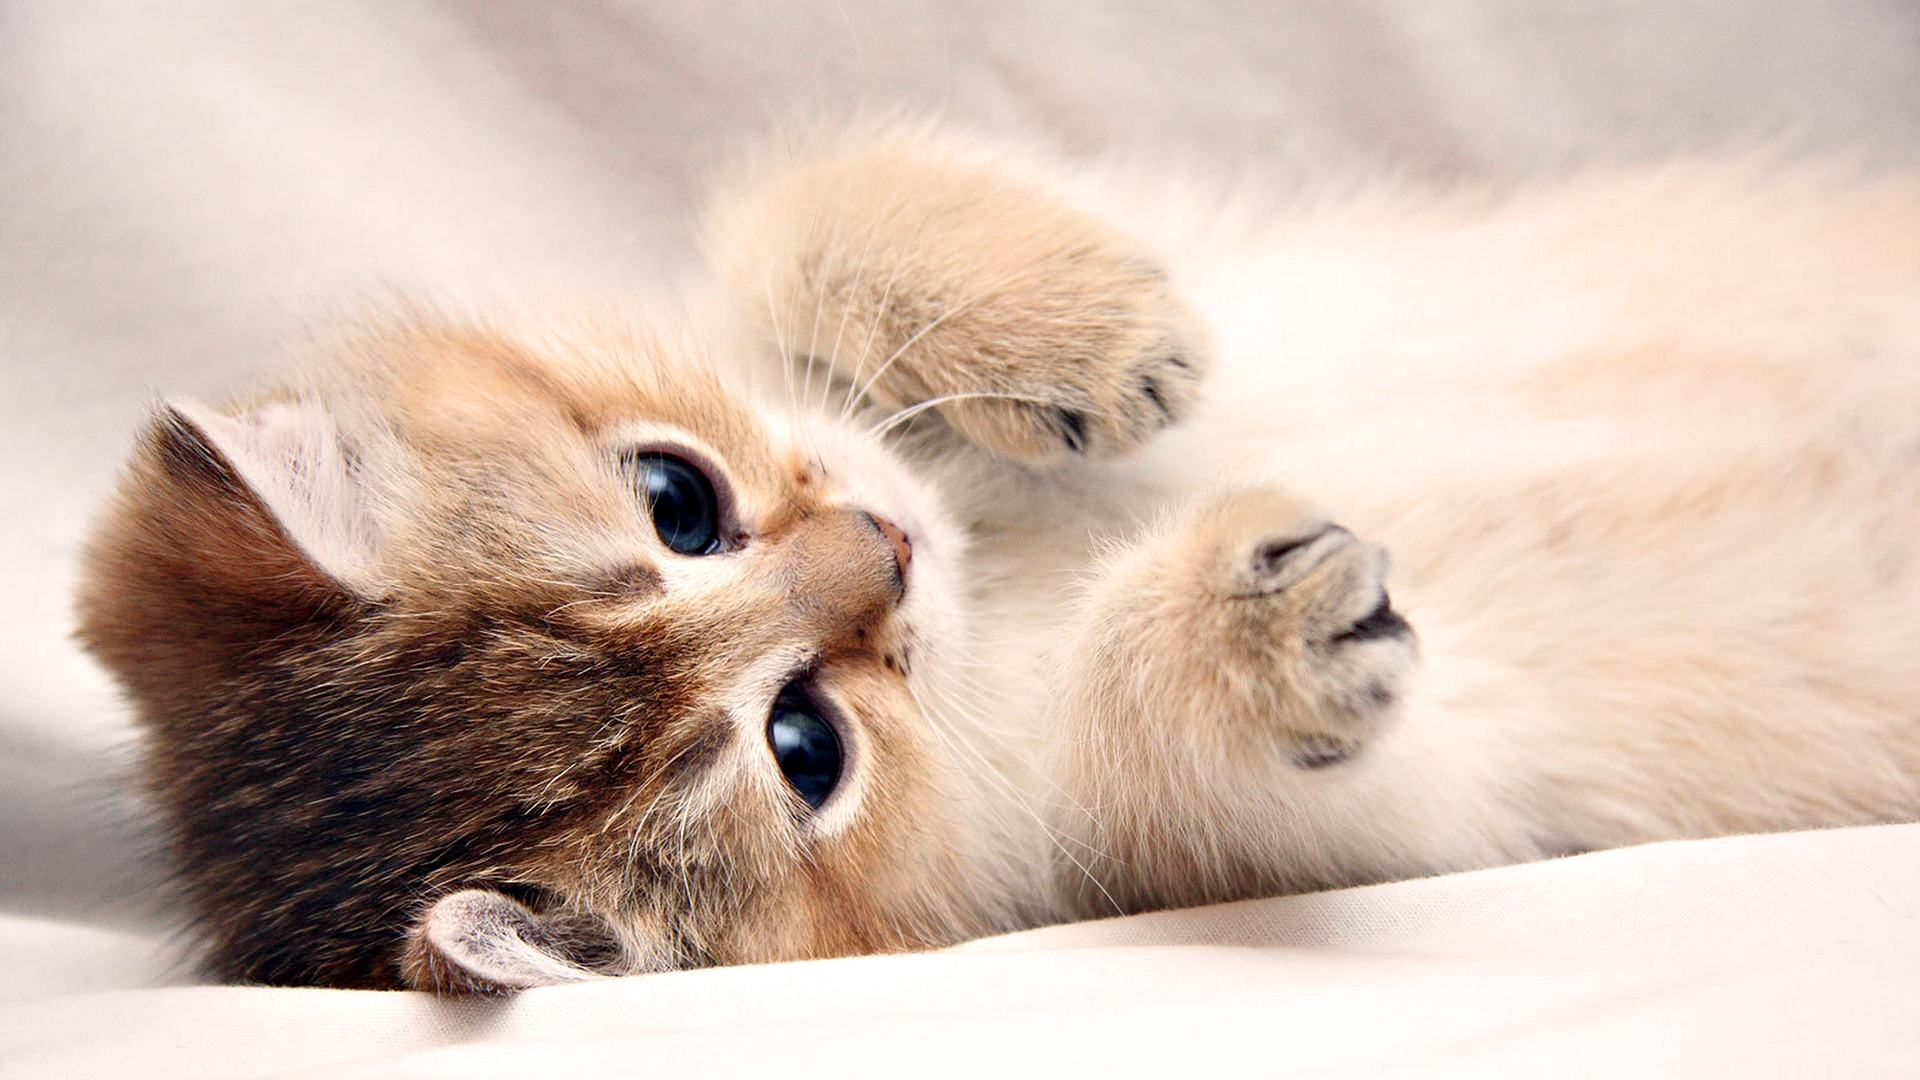 Cute Wallpapers For Laptop Free Download